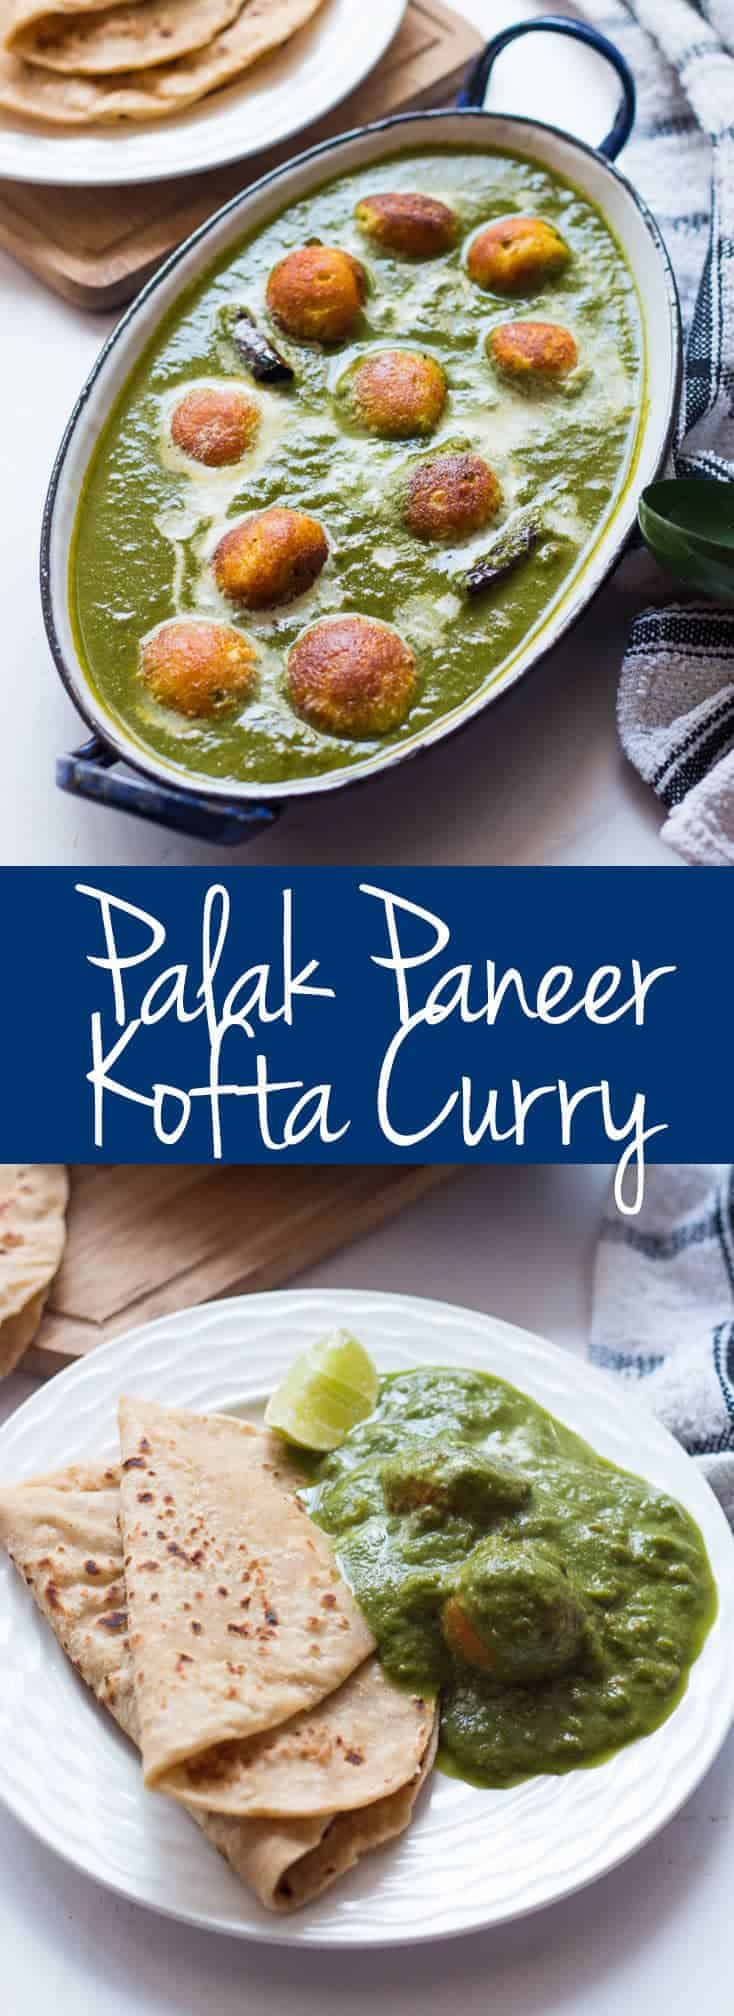 This Healthy Palak Paneer Kofta Curry is a new take on the widely loved Indian dish. The creamy koftas are cooked in a paniyaram or an appe pan instead of being deep fried and are then served with a spinach curry that bursts with flavors.This healthier version is perfect for when you want to eat clean but yummy food! #myfoodstory #recipe #indian #curry #homemade #easy #spicy #authentic #palakpaneer